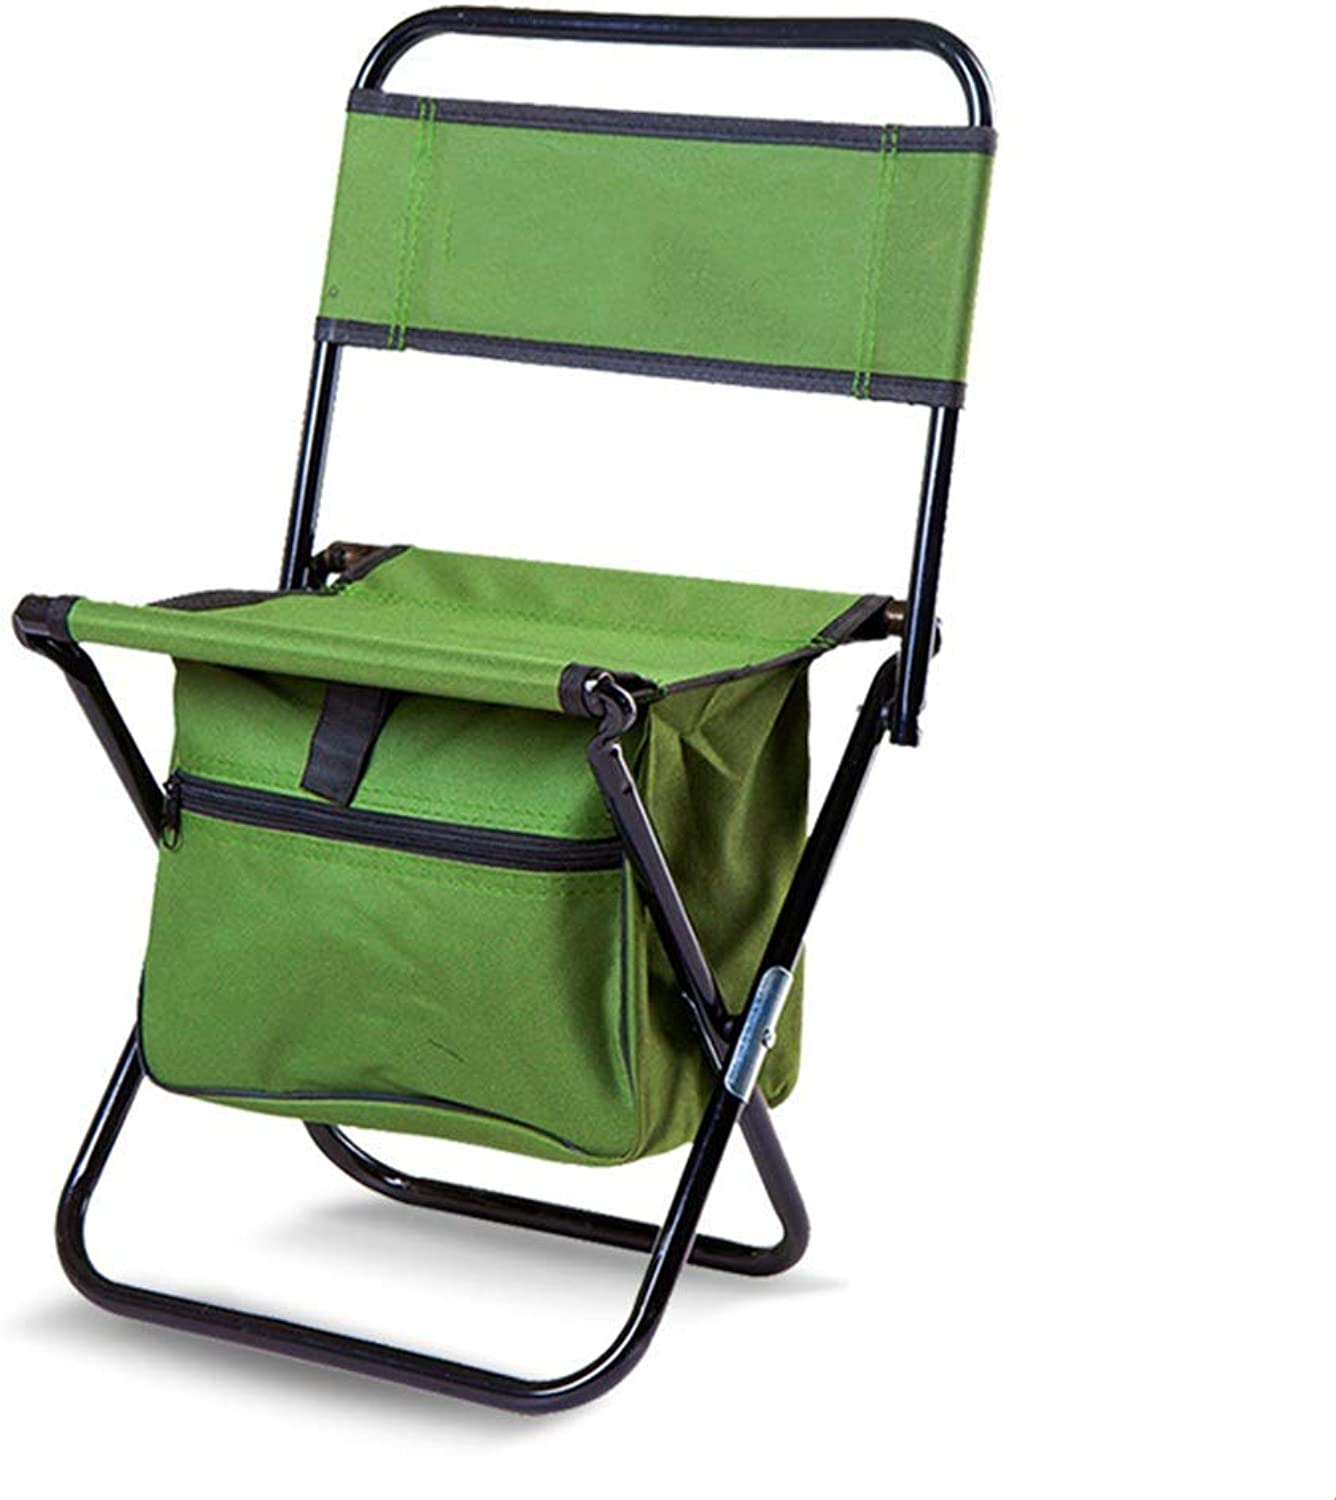 Outdoor Portable Folding Chair Camping Stool Backrest Storage Bag Leisure Comfort Picnic Travel Fishing Mountaineering Barbecue Park Garden Beach Army Green